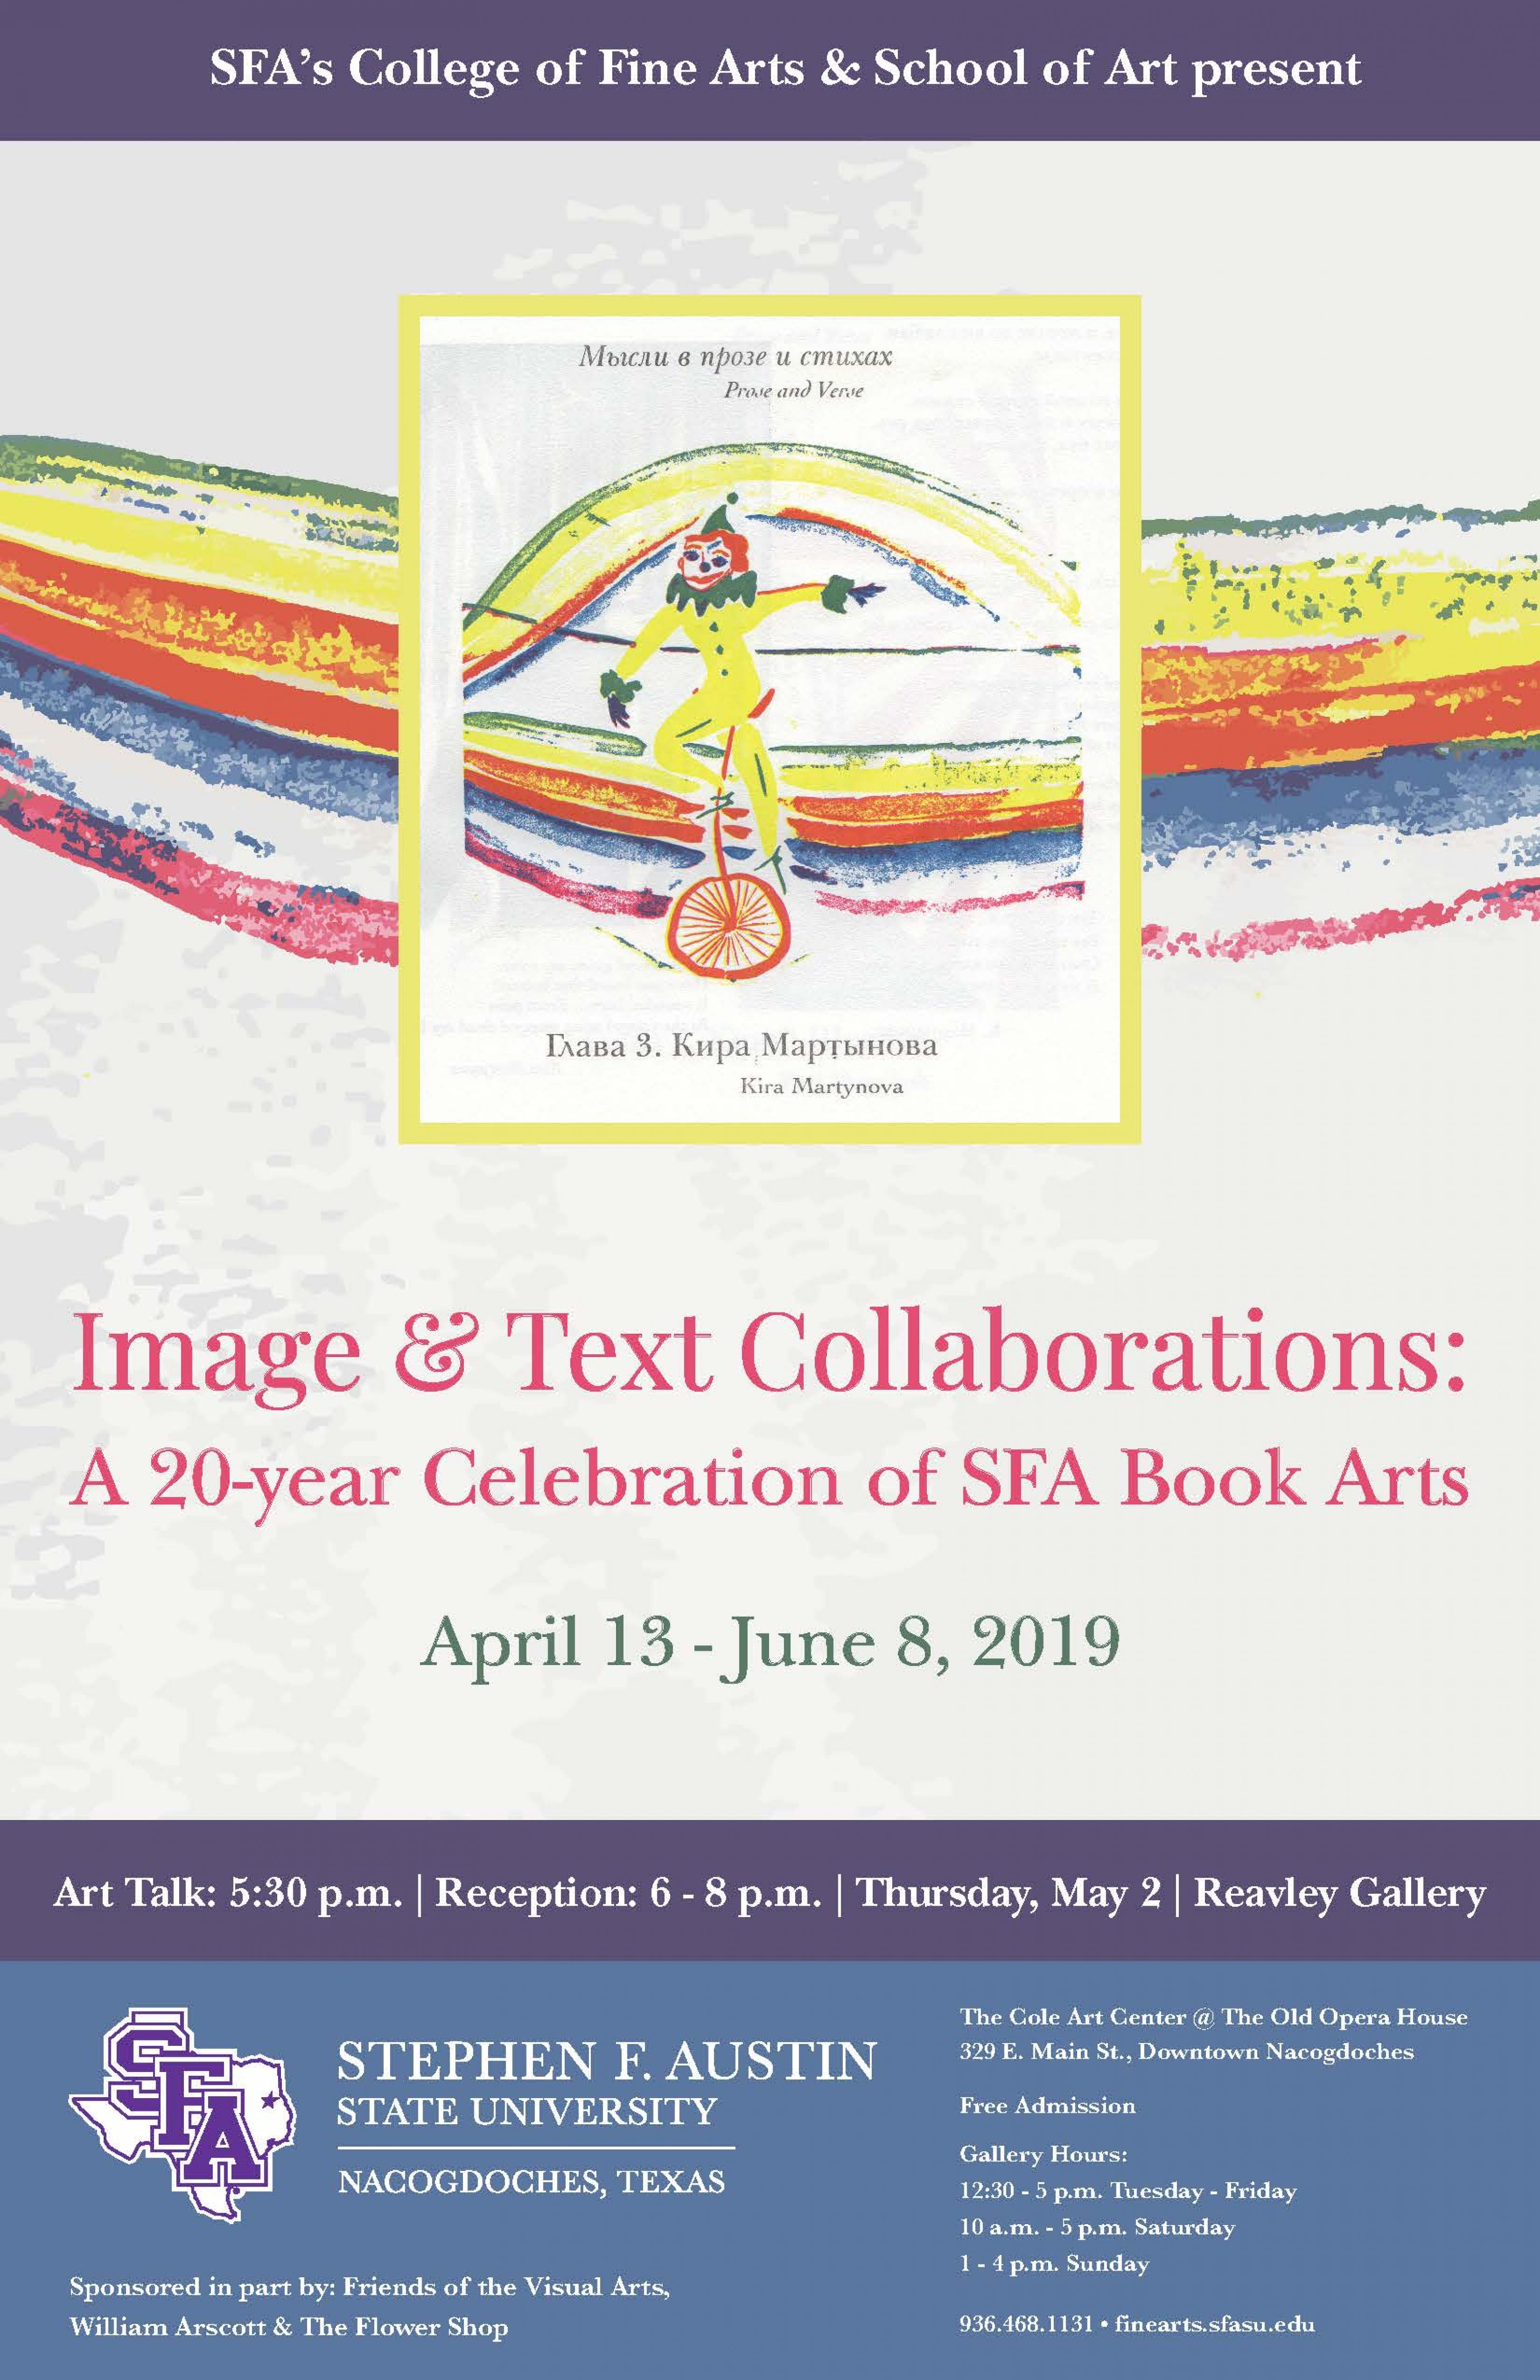 publicity image for Image & Text Collaborations: A 20-year Celebration of SFA Book Arts